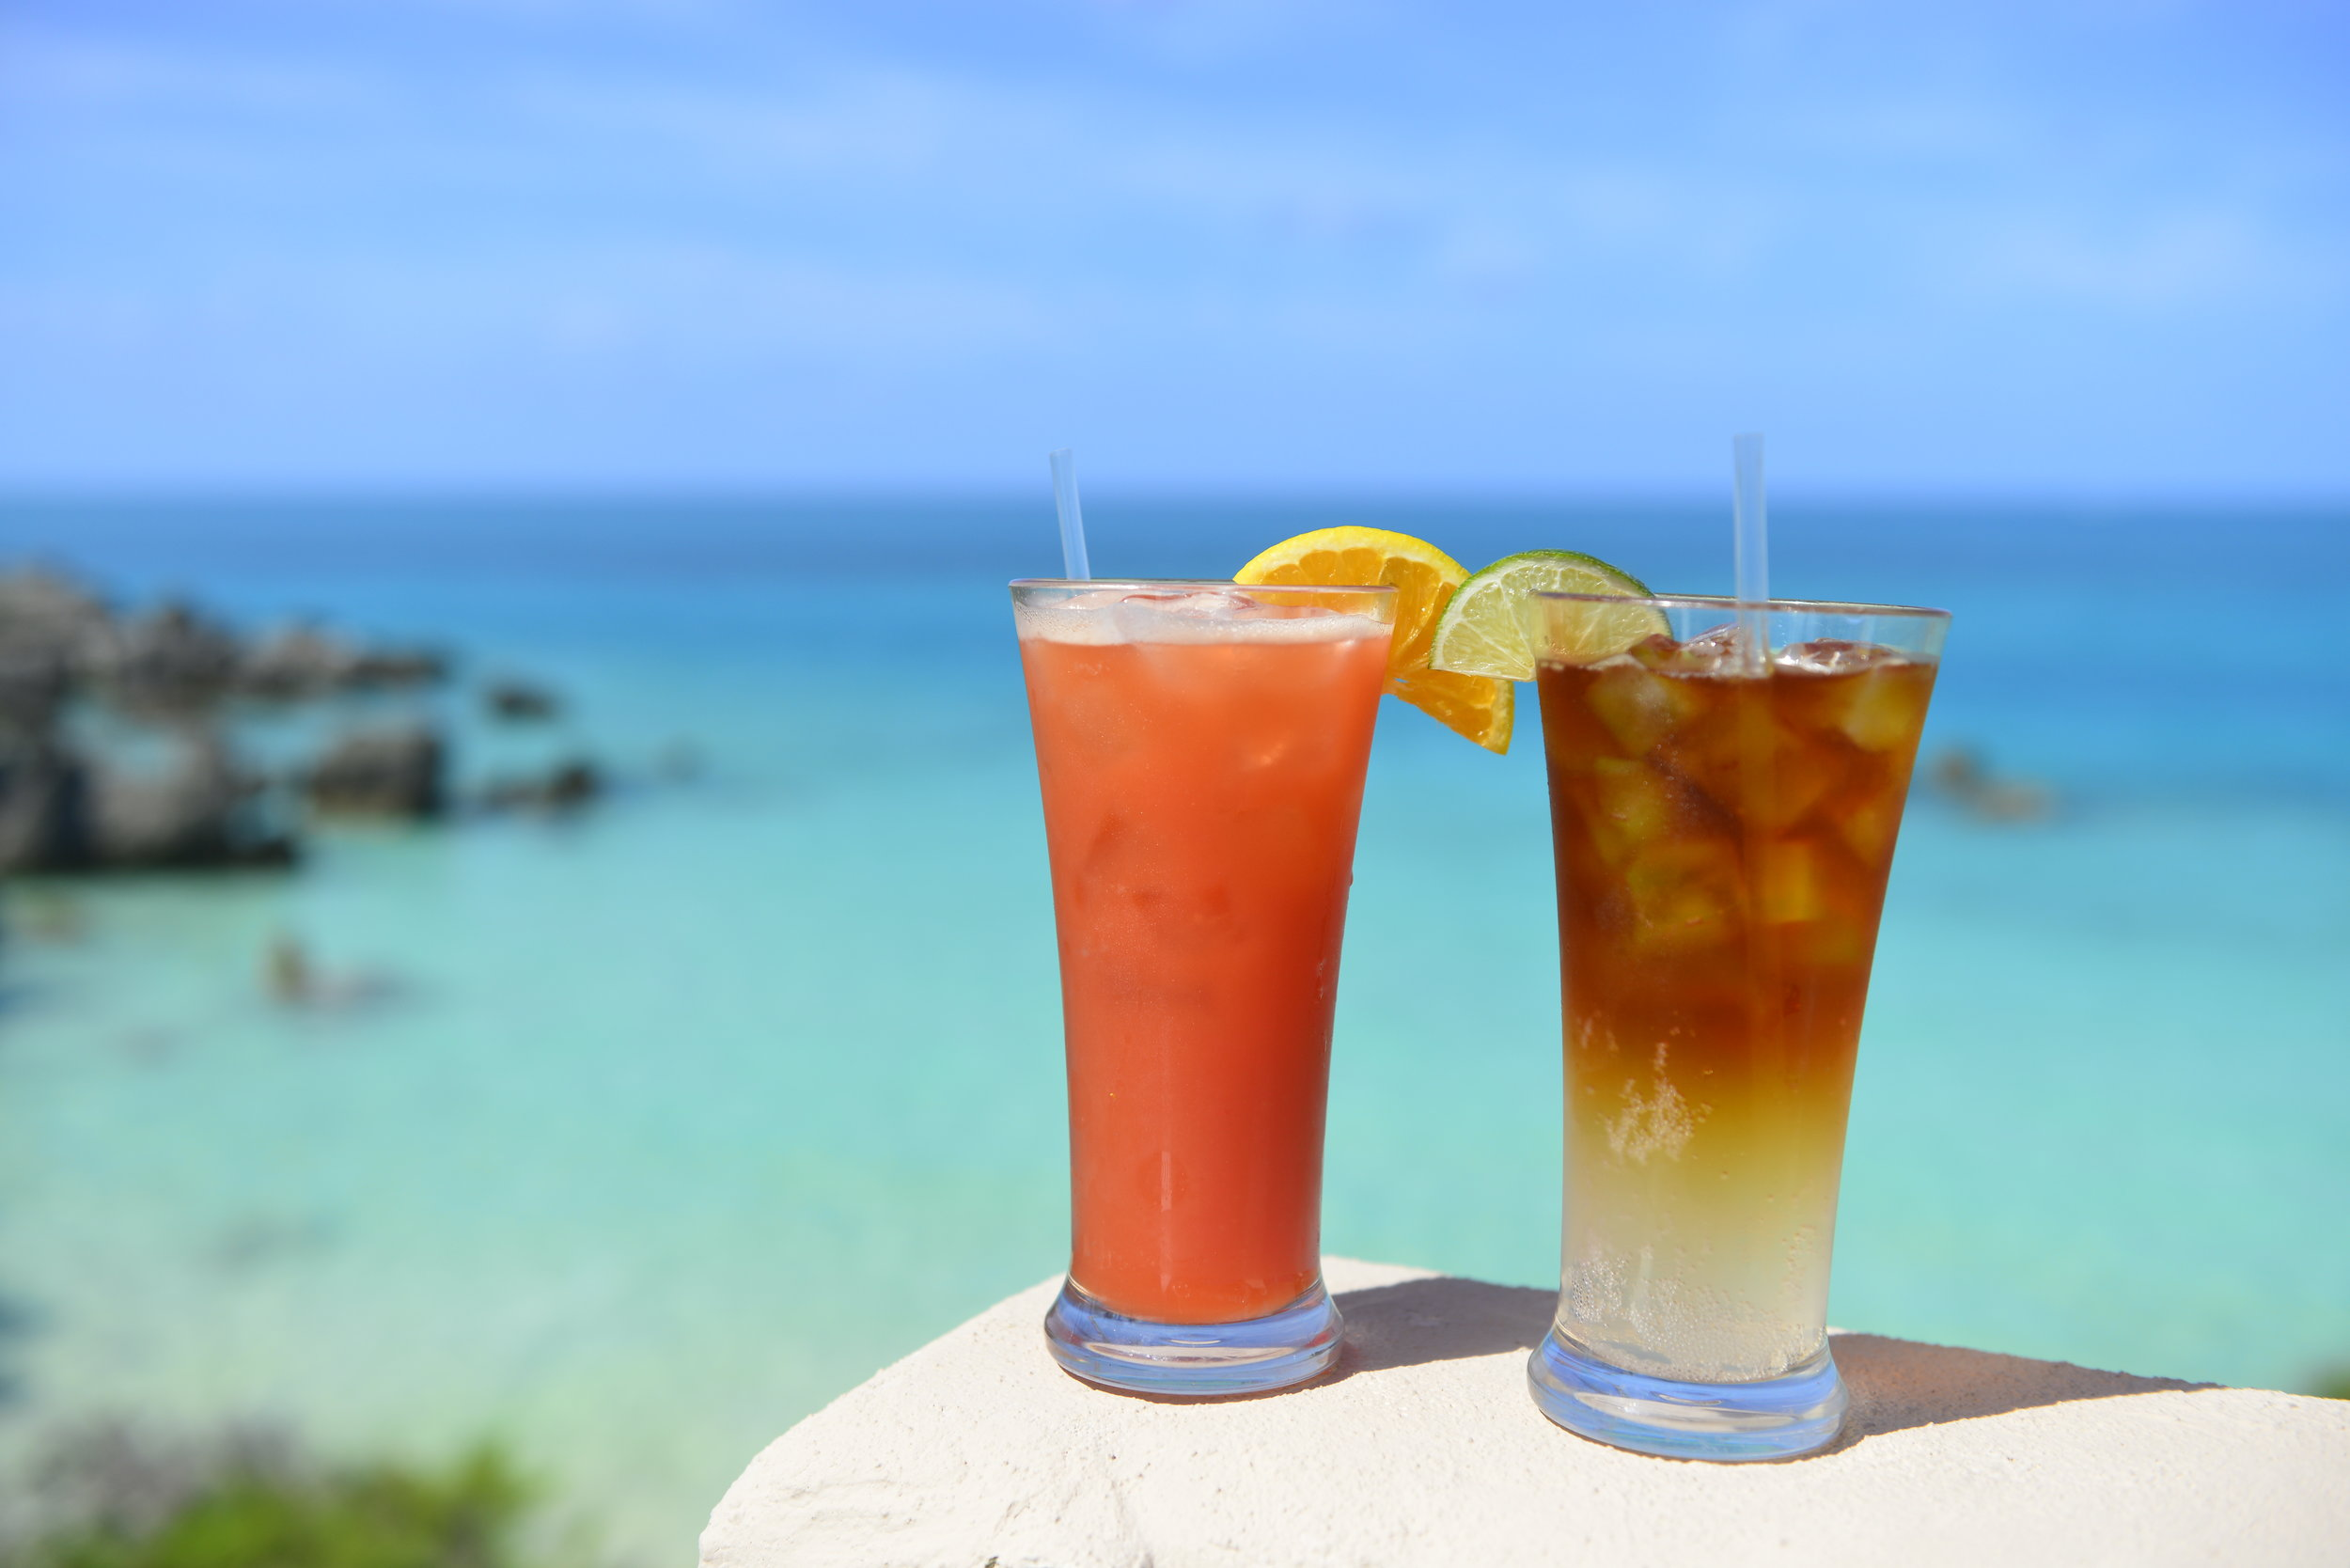 Tropical Drinks - Rum Swizzle and Dark n' Stormy at Beach House - Bermuda